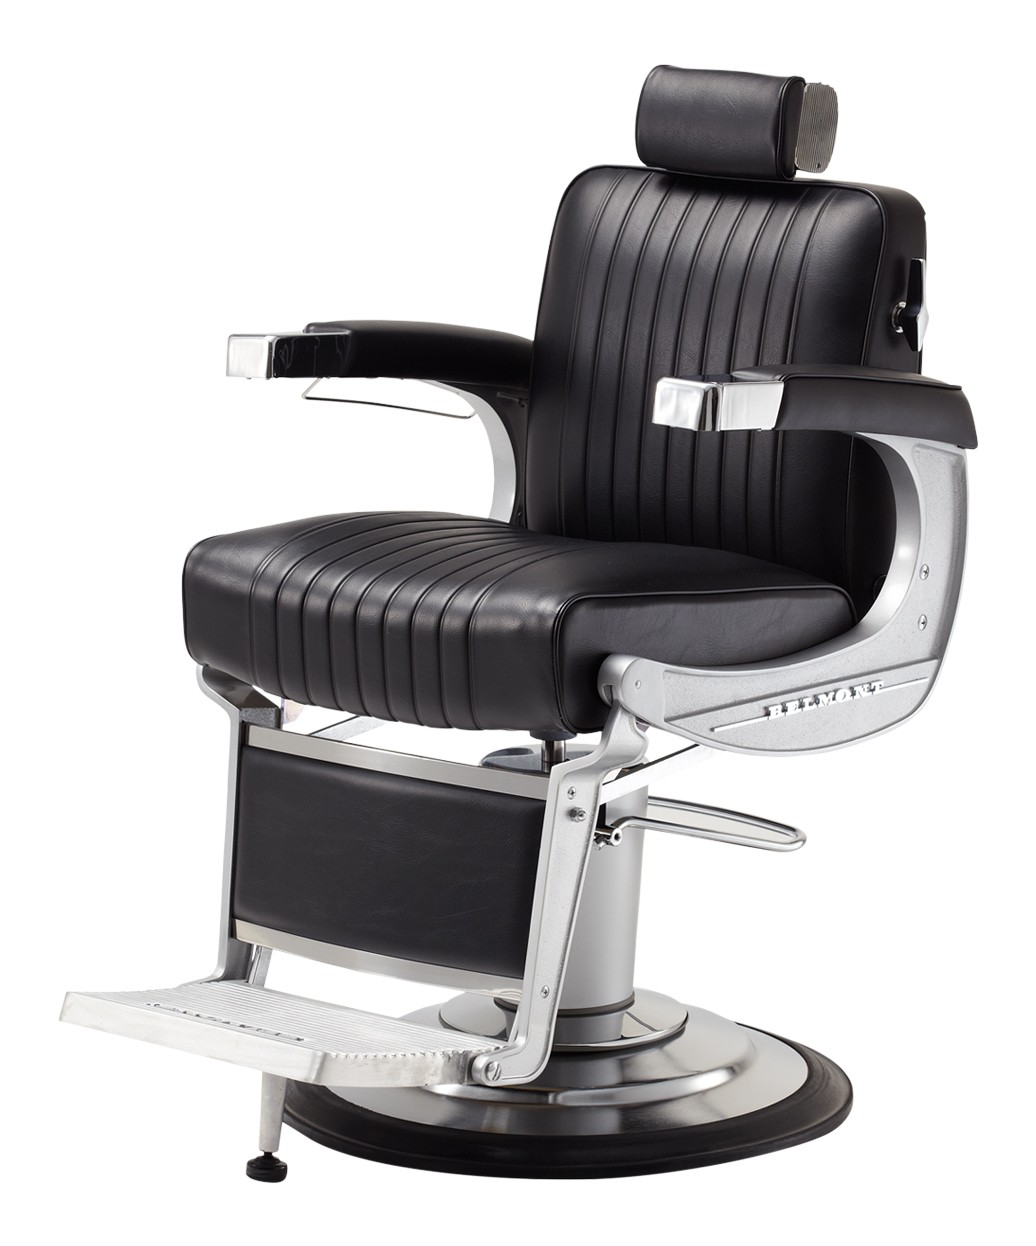 Takara Belmont BB-225 Elegance Barber Chair